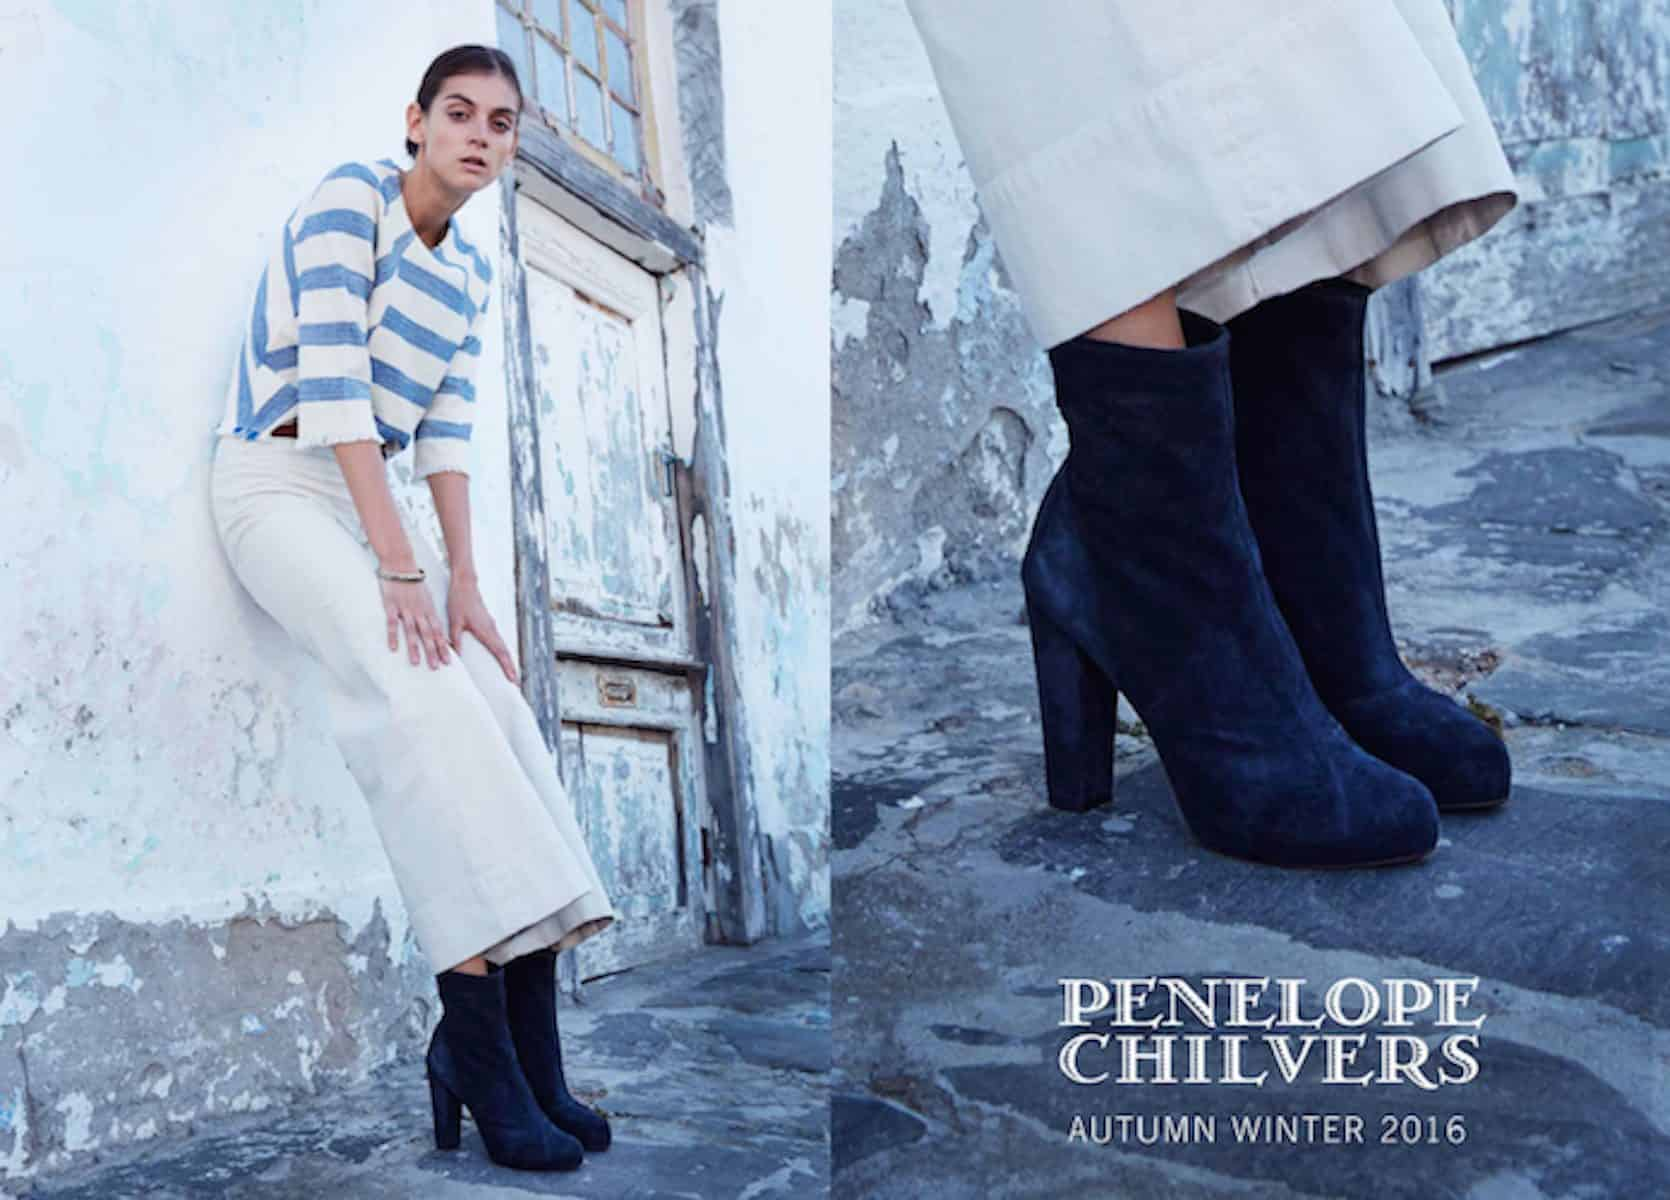 Penelope Chilvers – Rudi Geyser – Cape Town - Production by Baker & Co